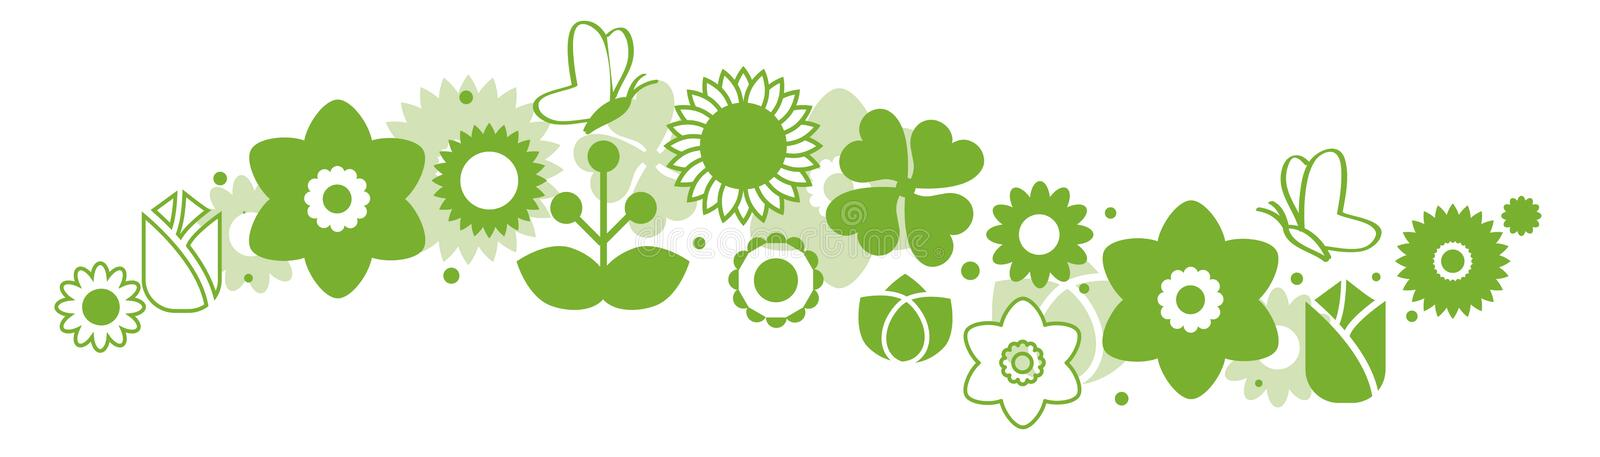 Set of green icon flower icons. In silhouette isolated on white vector illustration